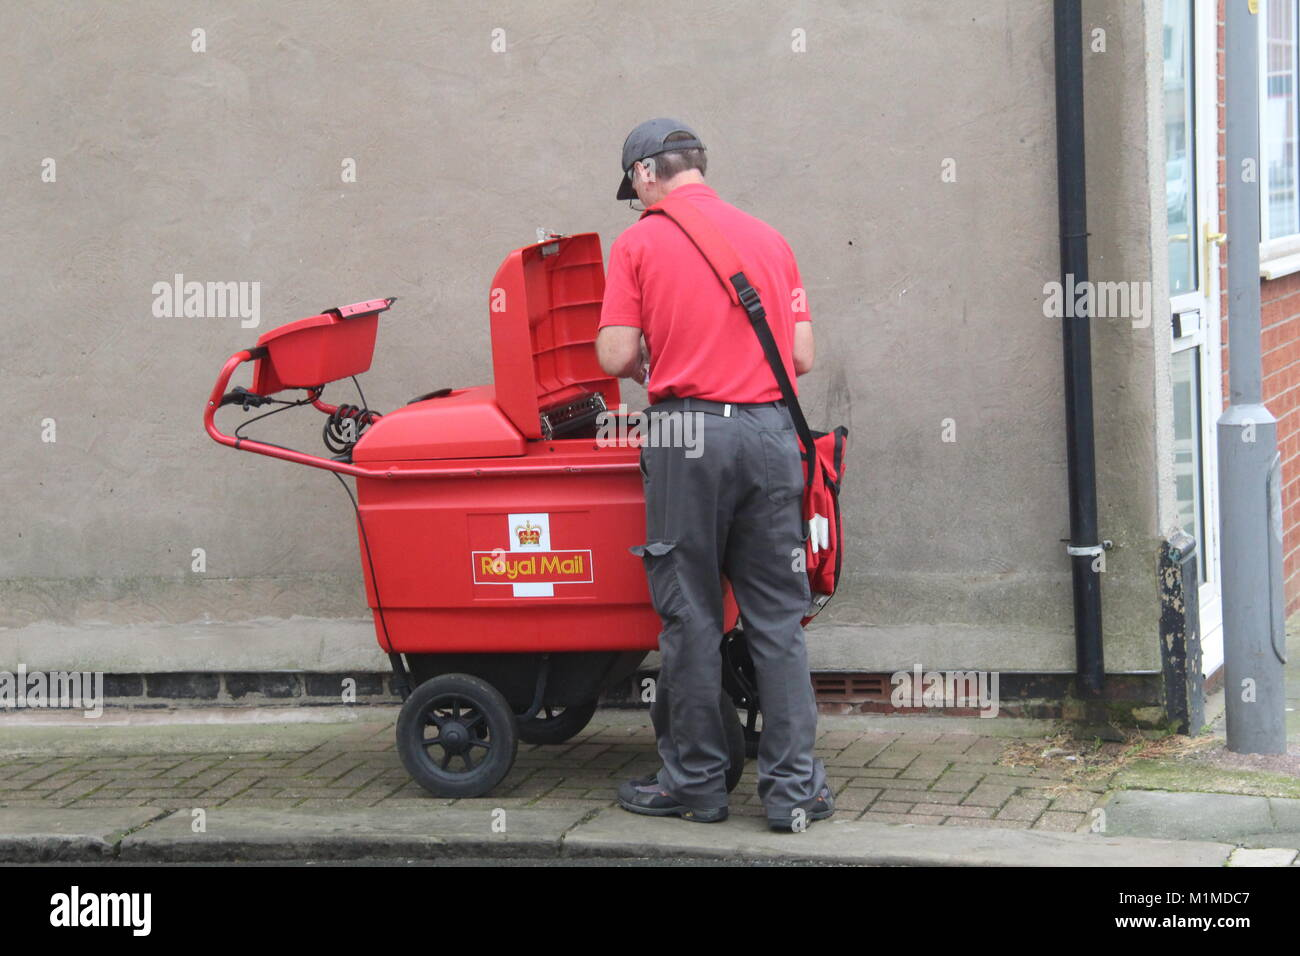 A RED ROYAL MAIL DELIVERY TROLLEY CART WITH POSTAL WORKER SORTING MAIL IN A STREET IN FLEETWOOD TOWN CENTRE - Stock Image